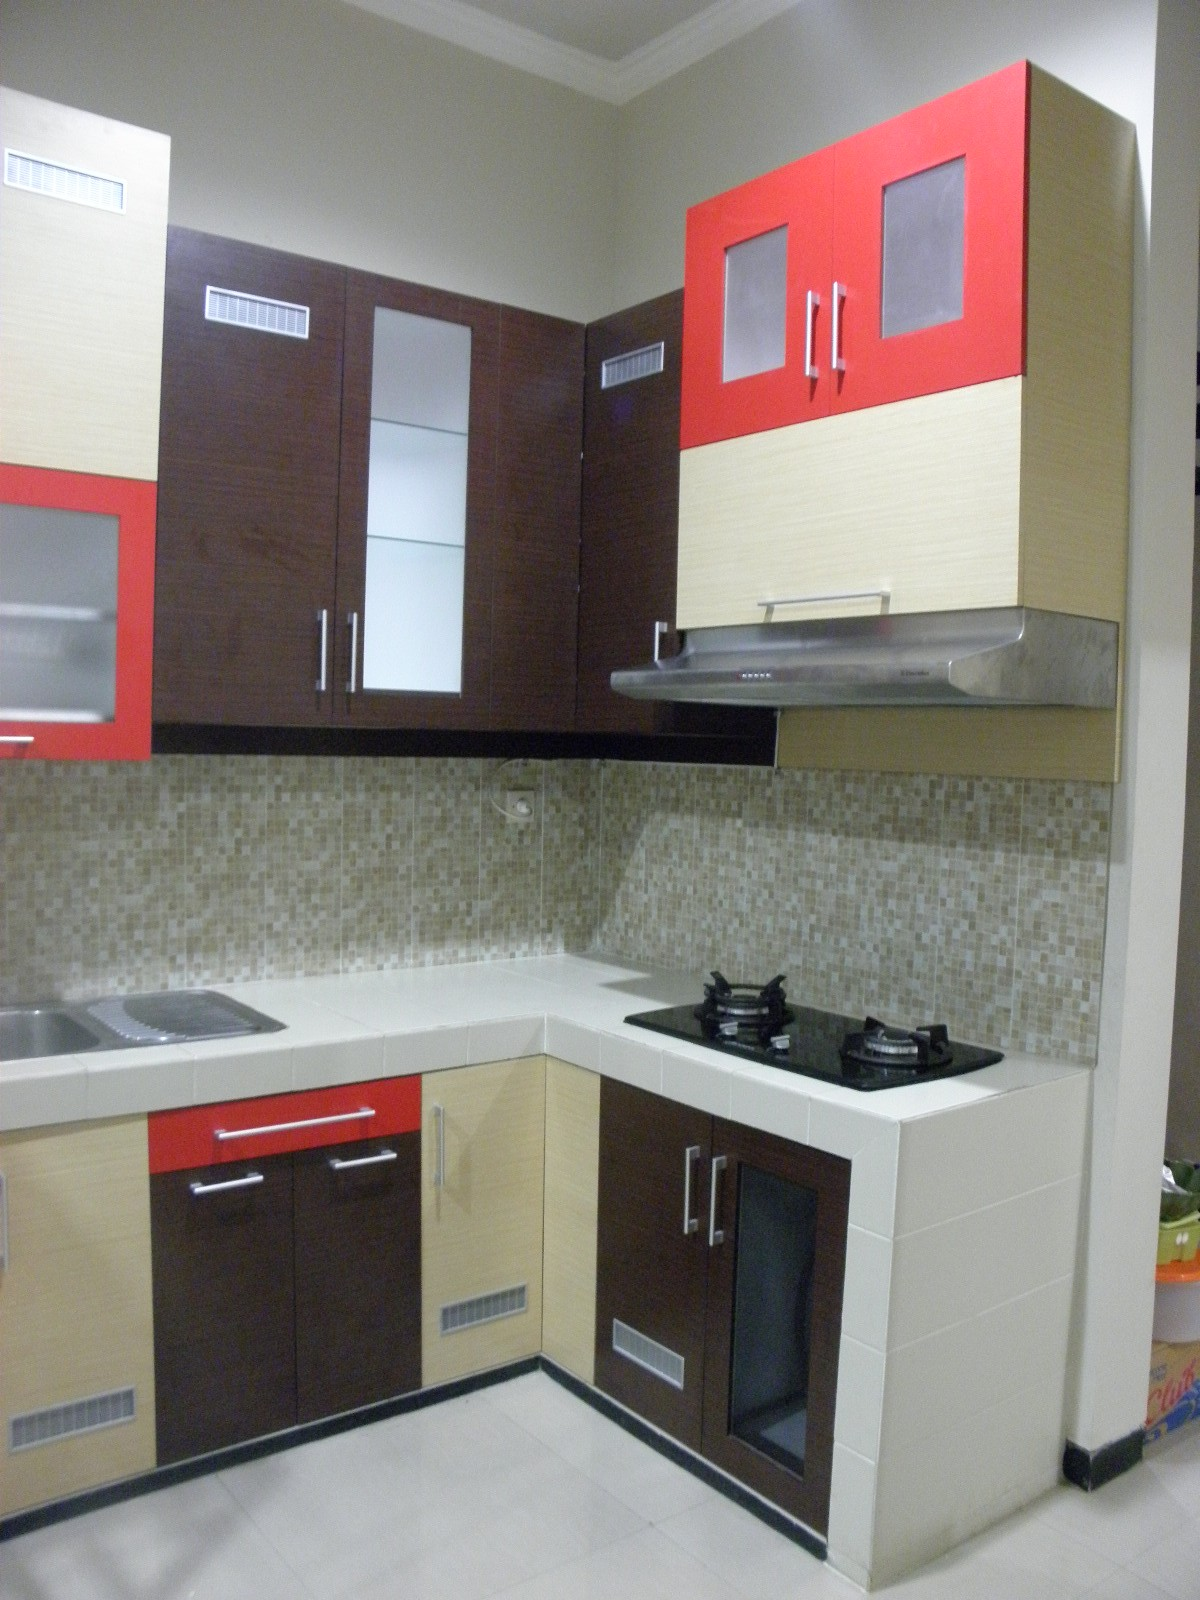 Desain Kitchen Set Modern Kecil Terbaik Untuk Desain Dapur Kitchen T Of Desain Kitchen Set Modern Kecil Terbagus Untuk is A U Shaped Layout the Right Choice for Your Kitchen — and if so